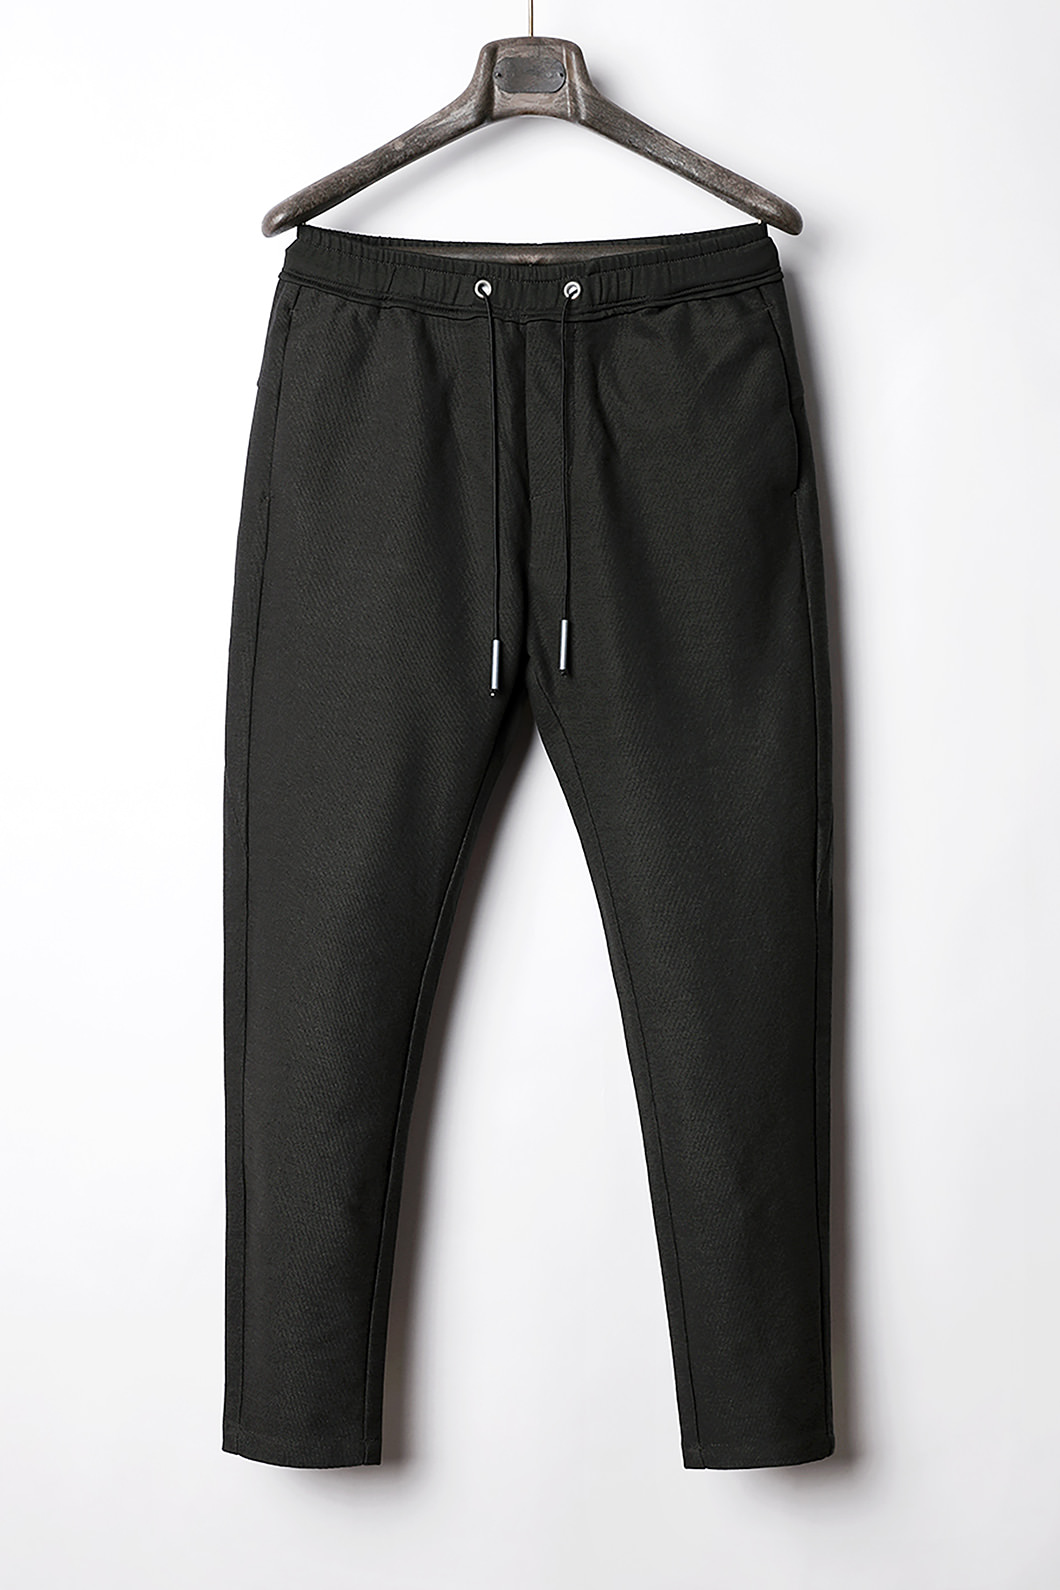 N.C.P BANDING STRING PANTS-2COLOR수입한정제품